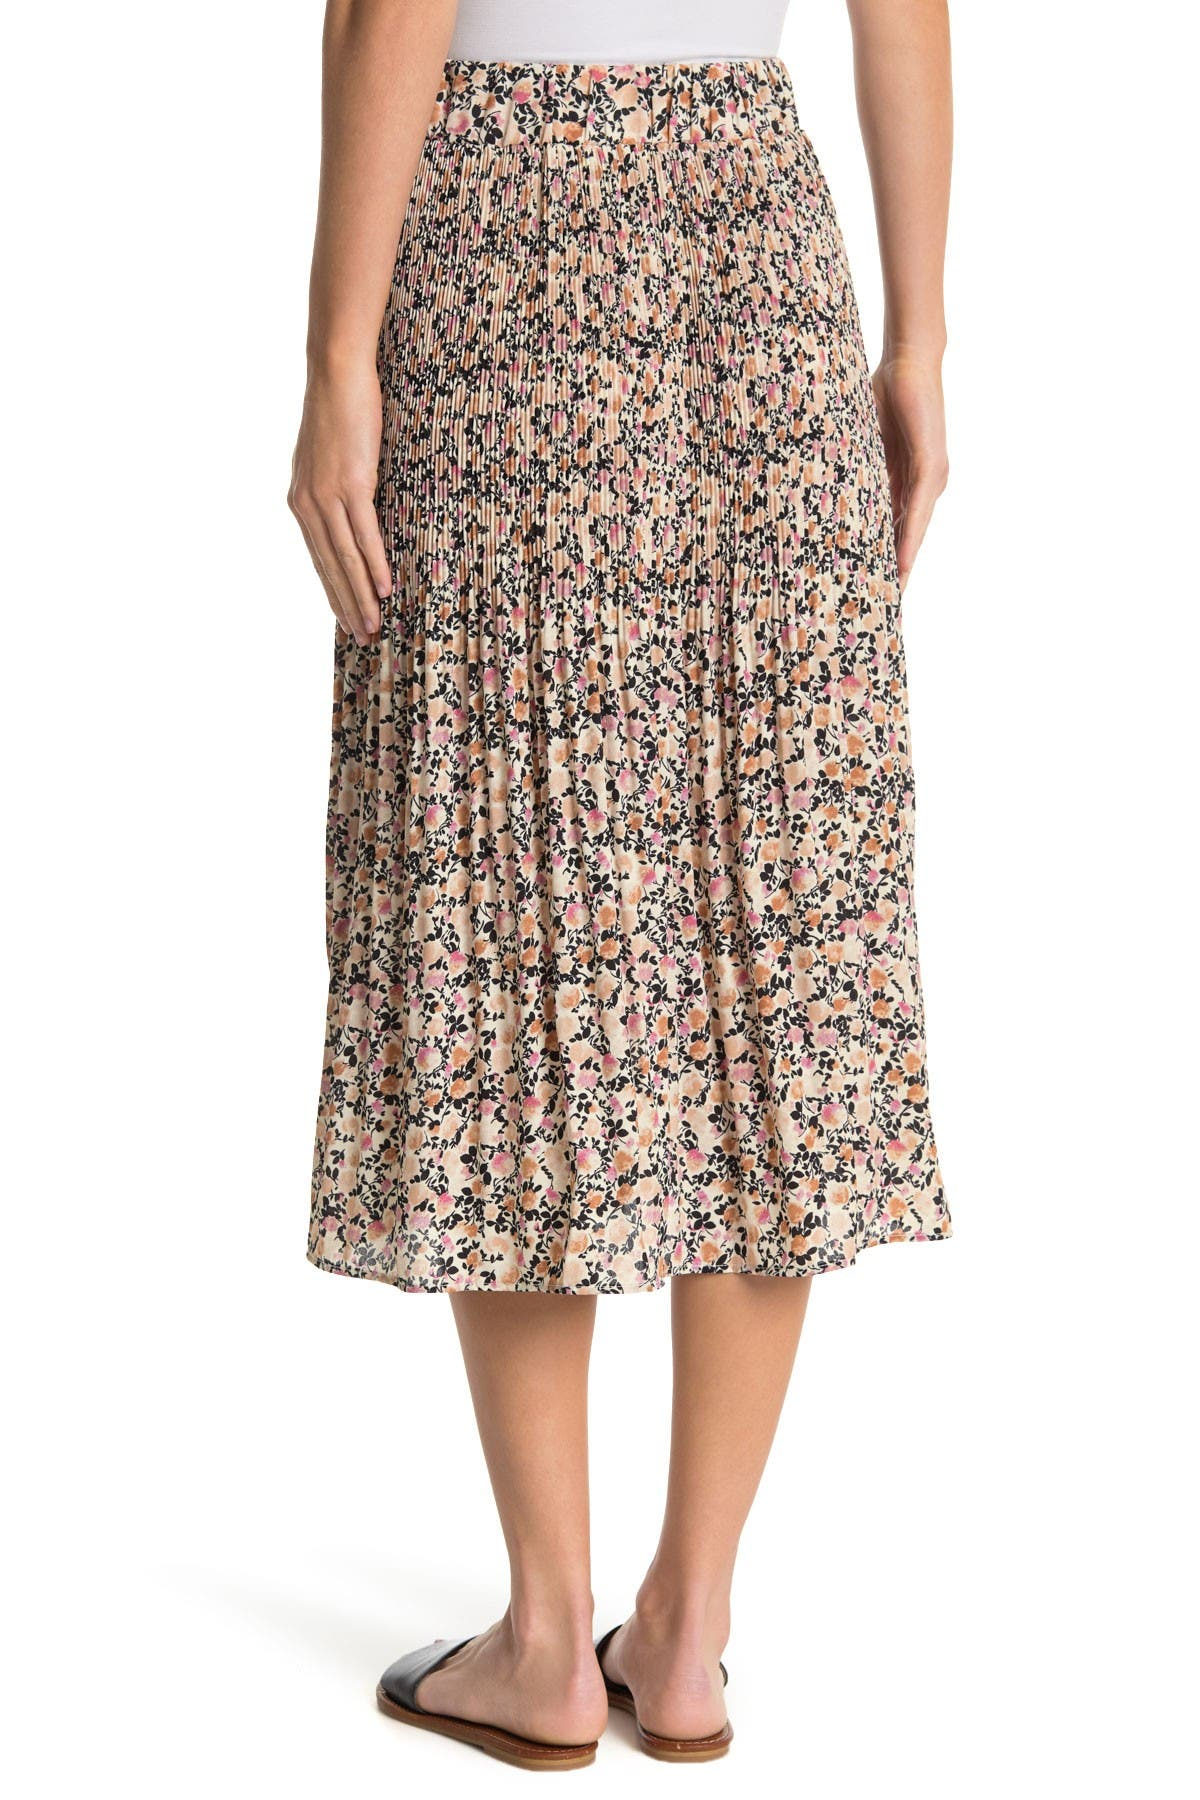 Image of Chenault Ditsy Floral Print Pleated Skirt